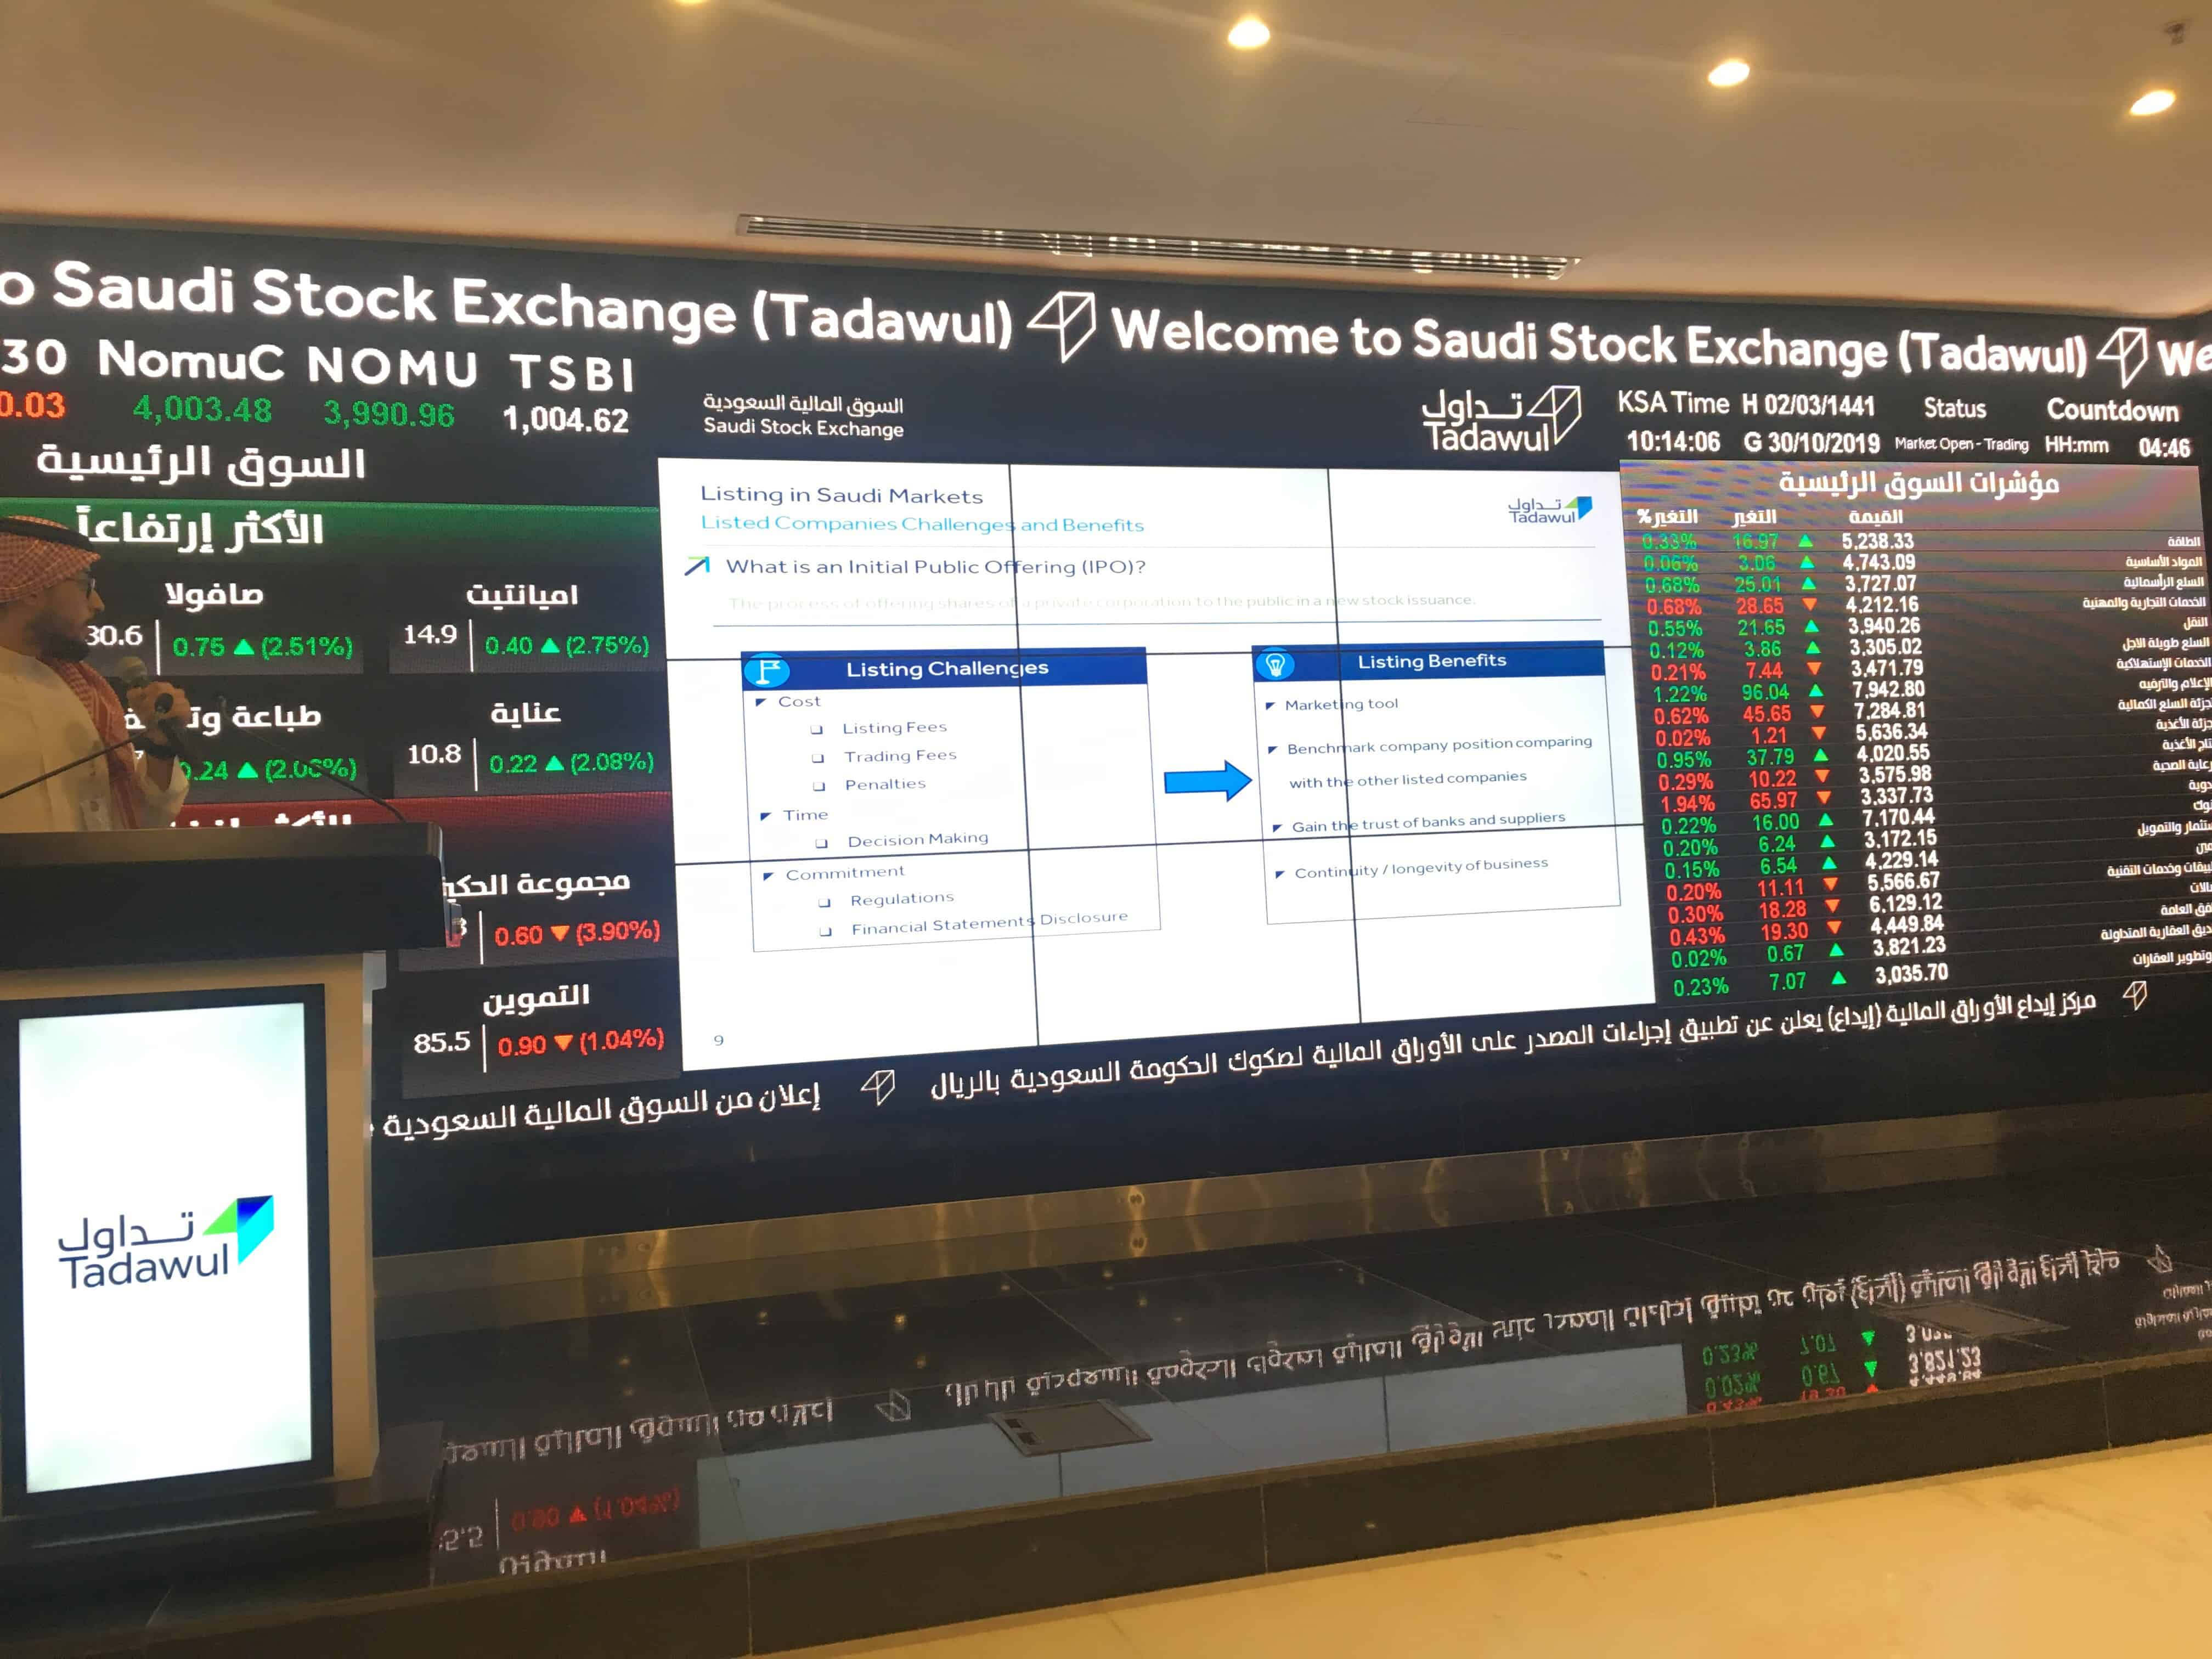 Field Visit to Saudi Stock Exchange Tadawul